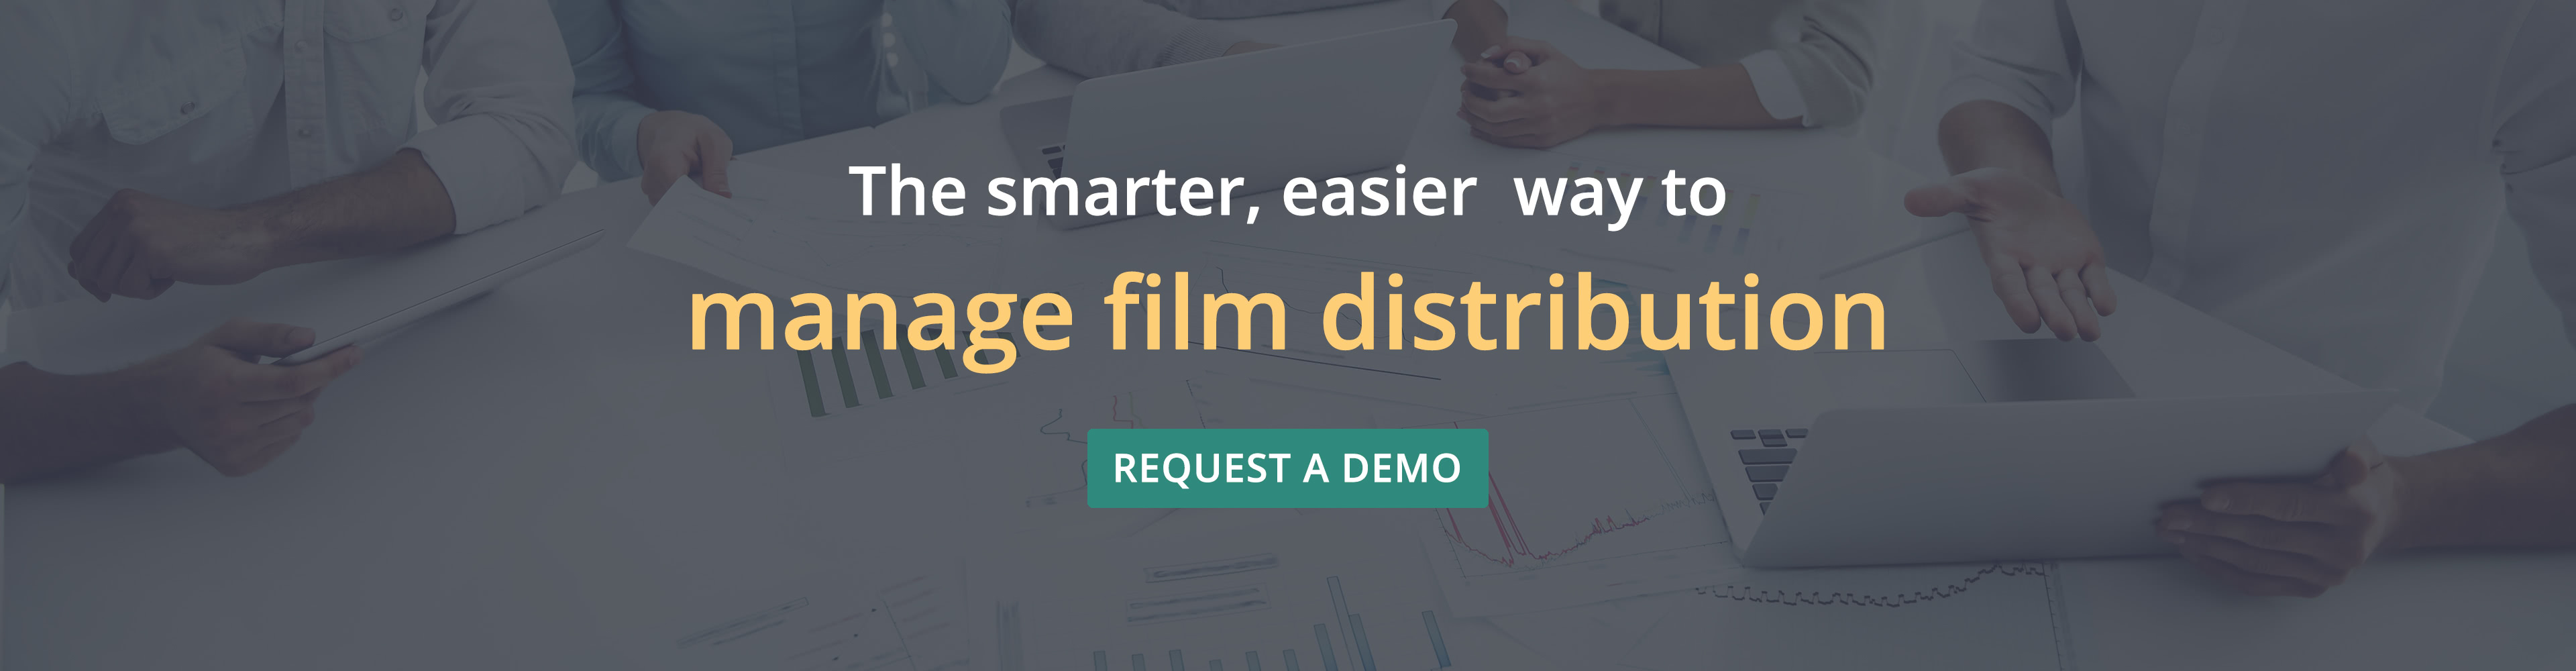 Smarter, easier way to manage film distribution!